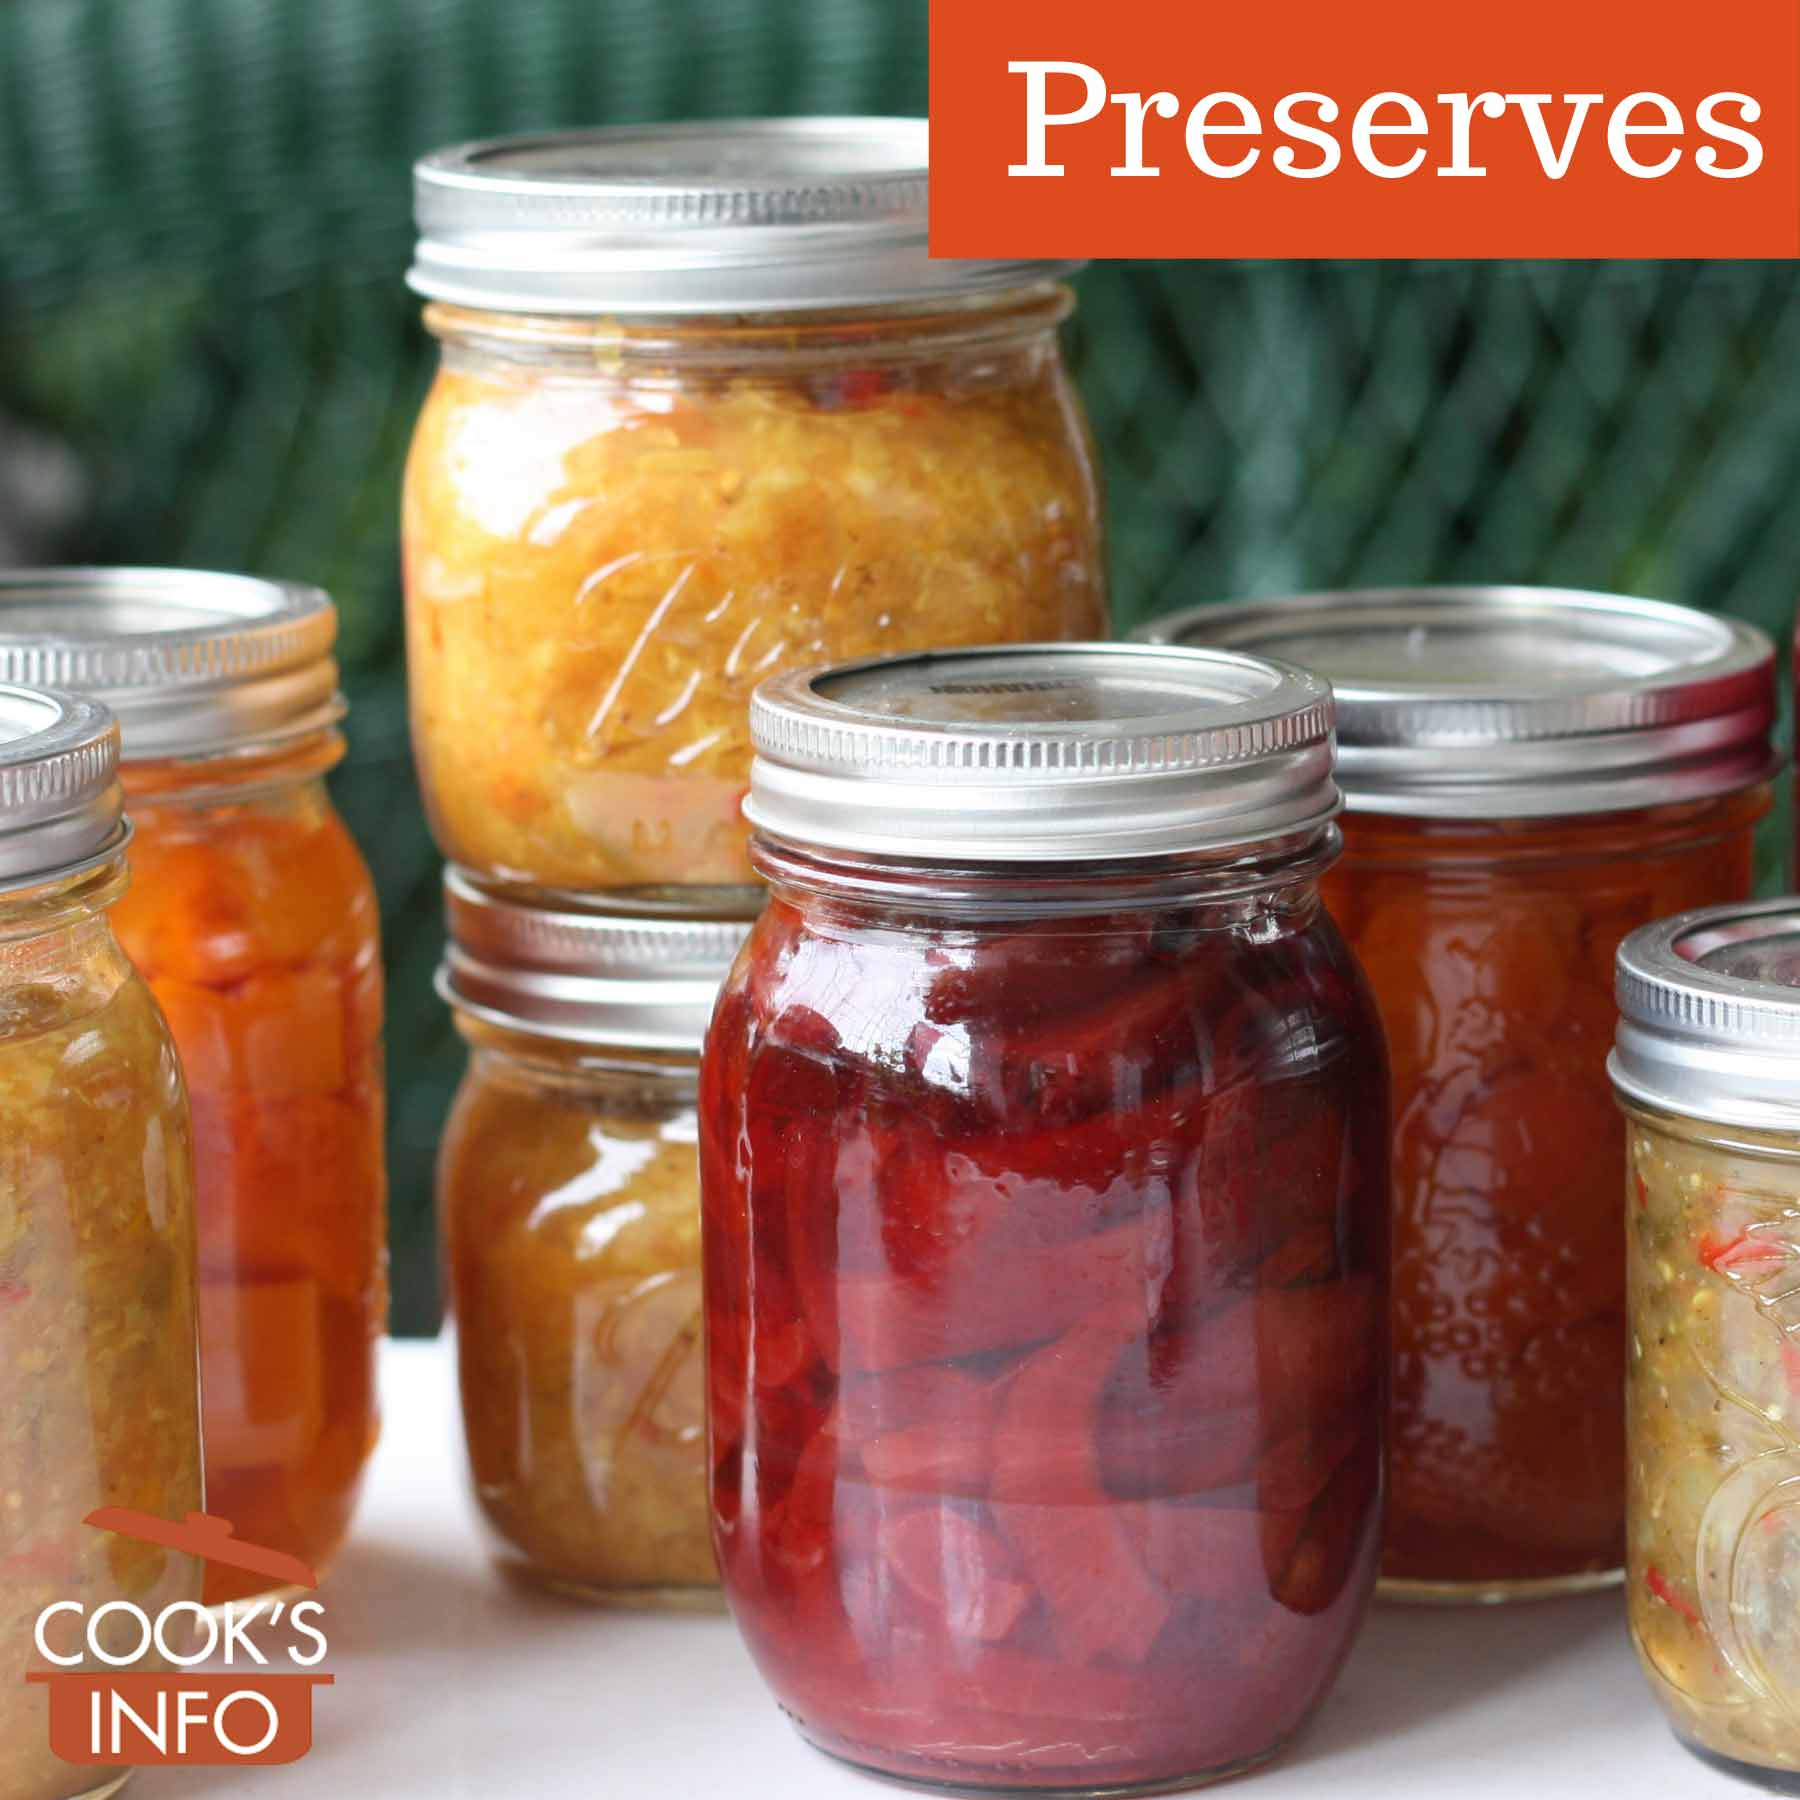 Sealed jars of preserves